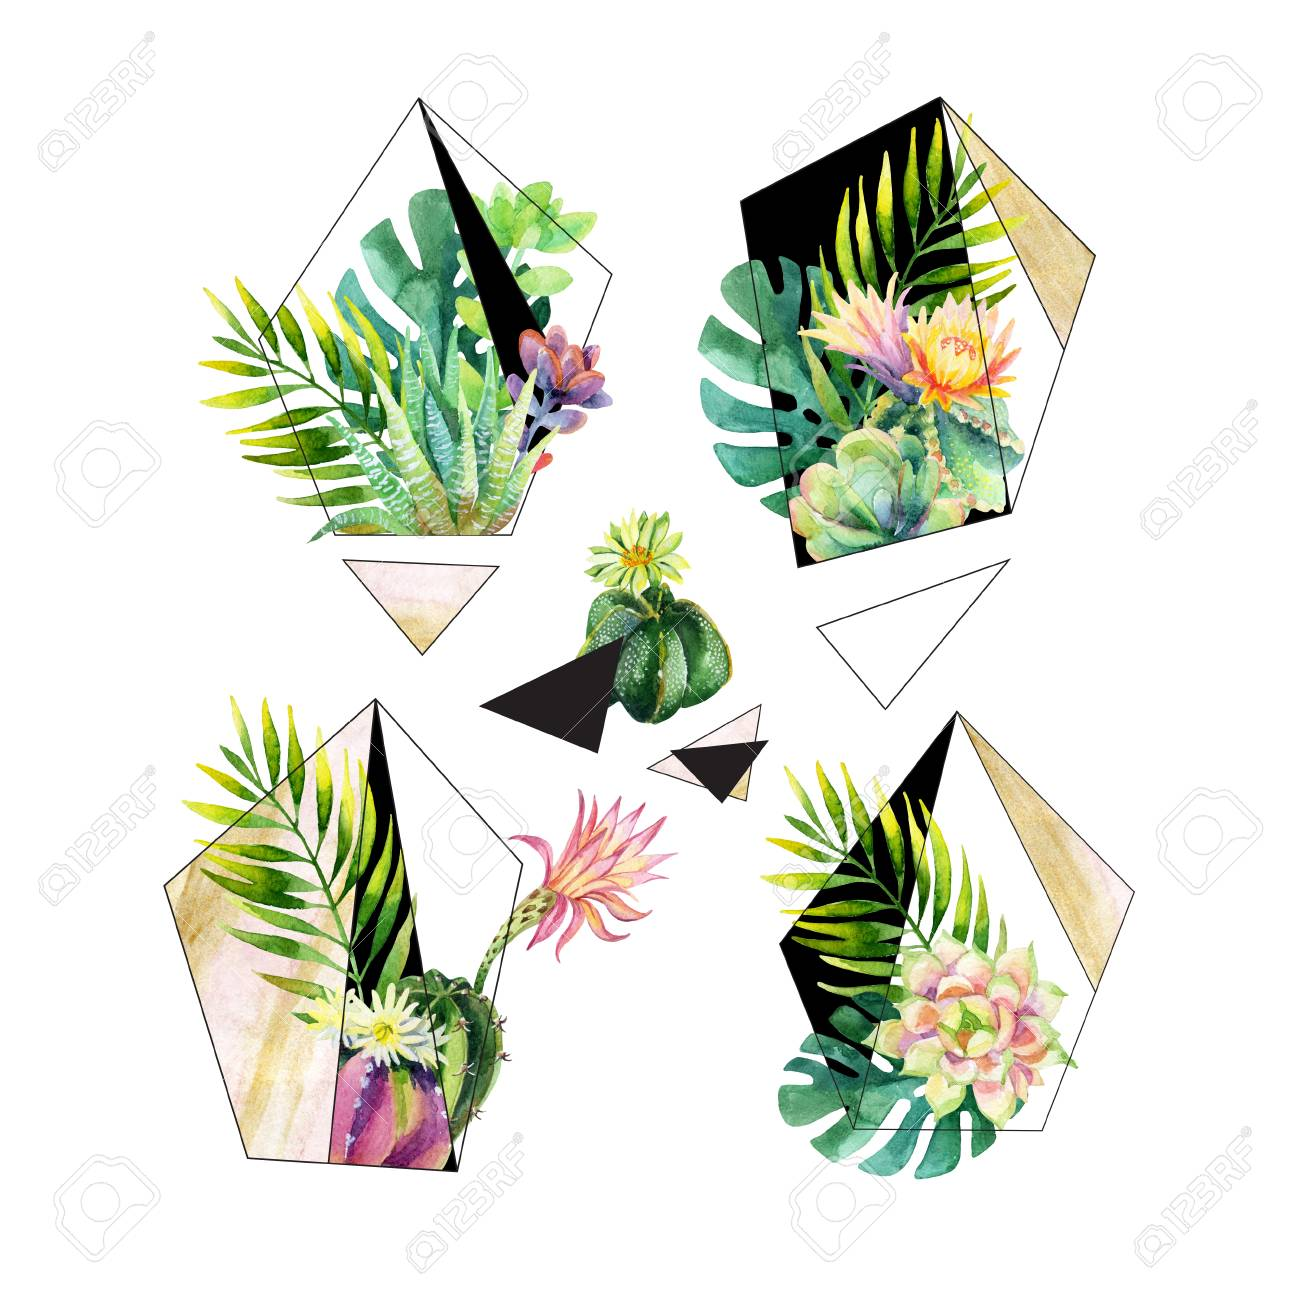 Watercolor Exotic Abstract Terrarium Plants Isolated On White